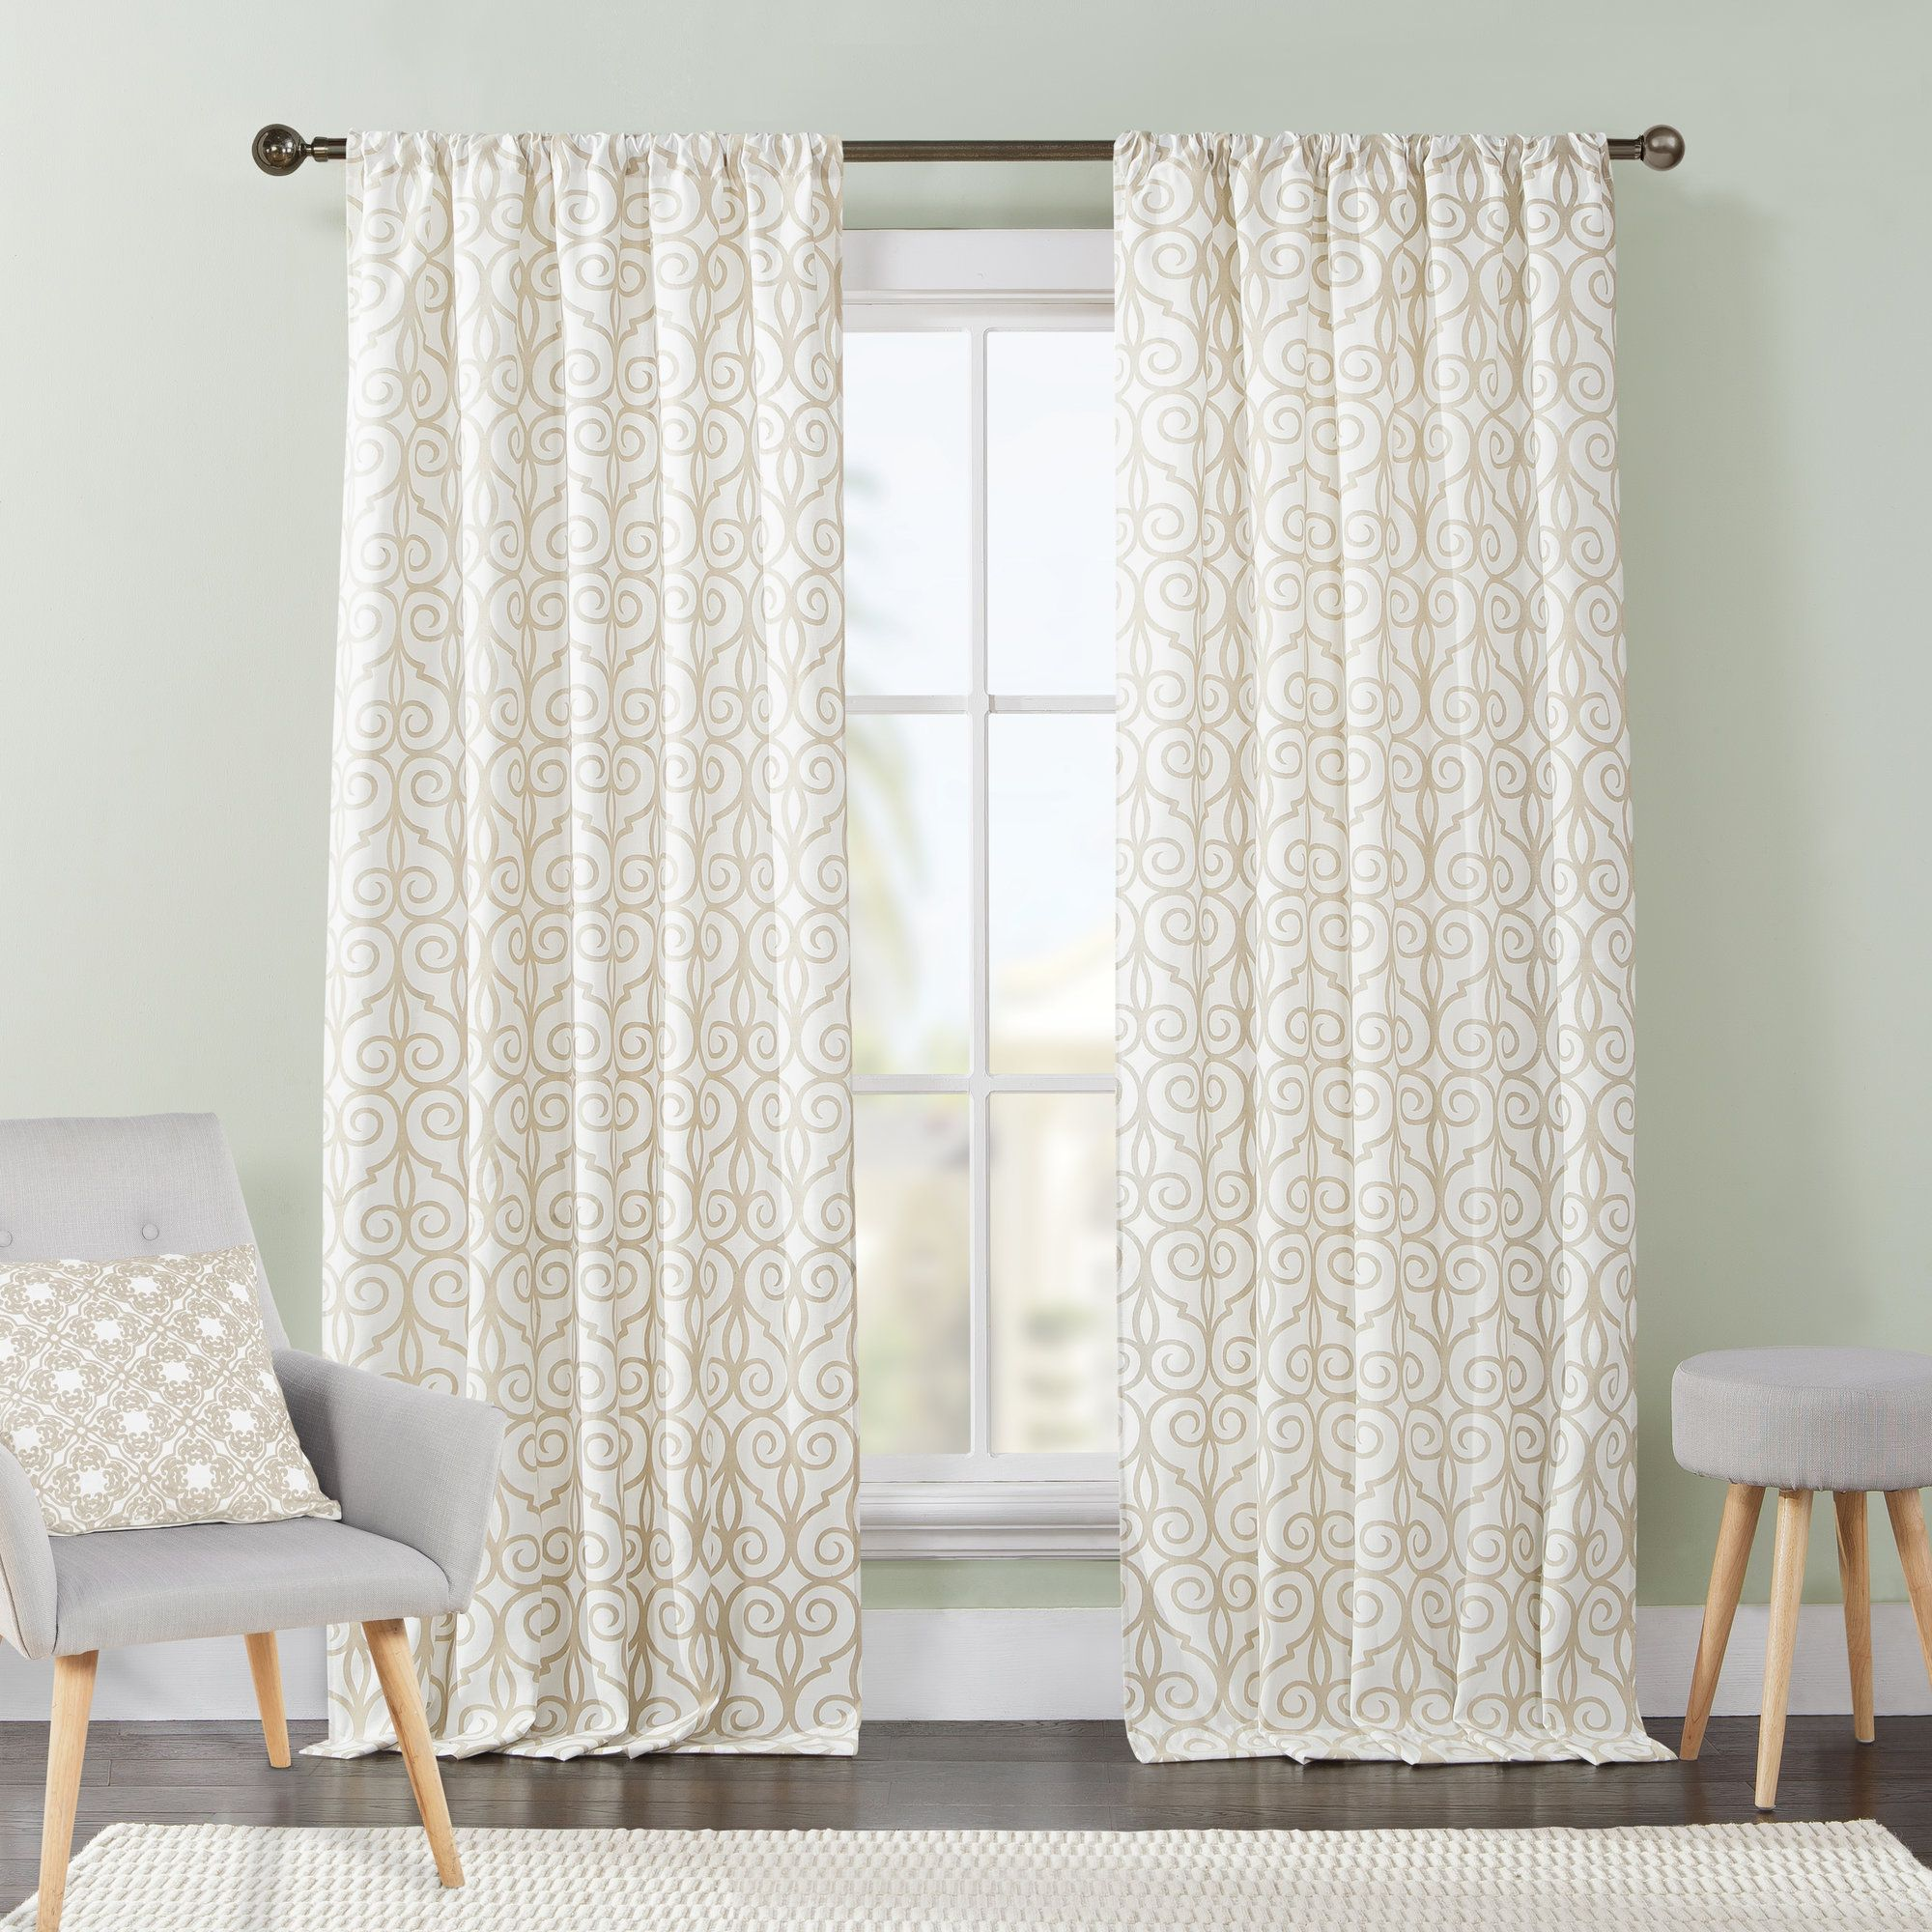 Popular window coverings  julianna scrolling rod pocket curtain panel pair  products